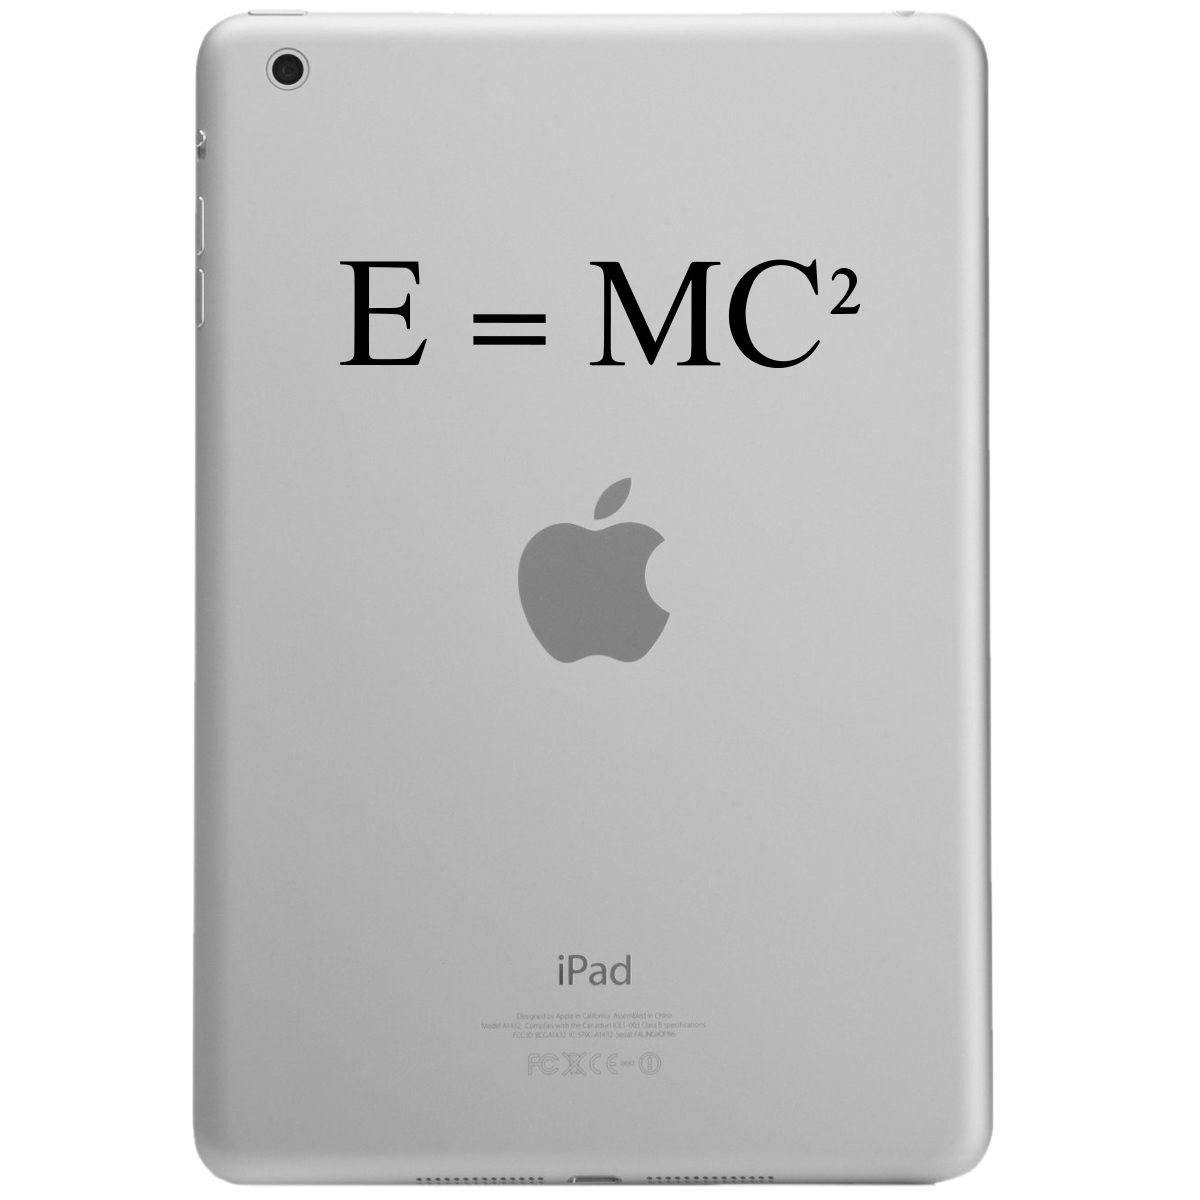 E=MC2 Einstein Math Equation iPad Tablet Vinyl Sticker Decal